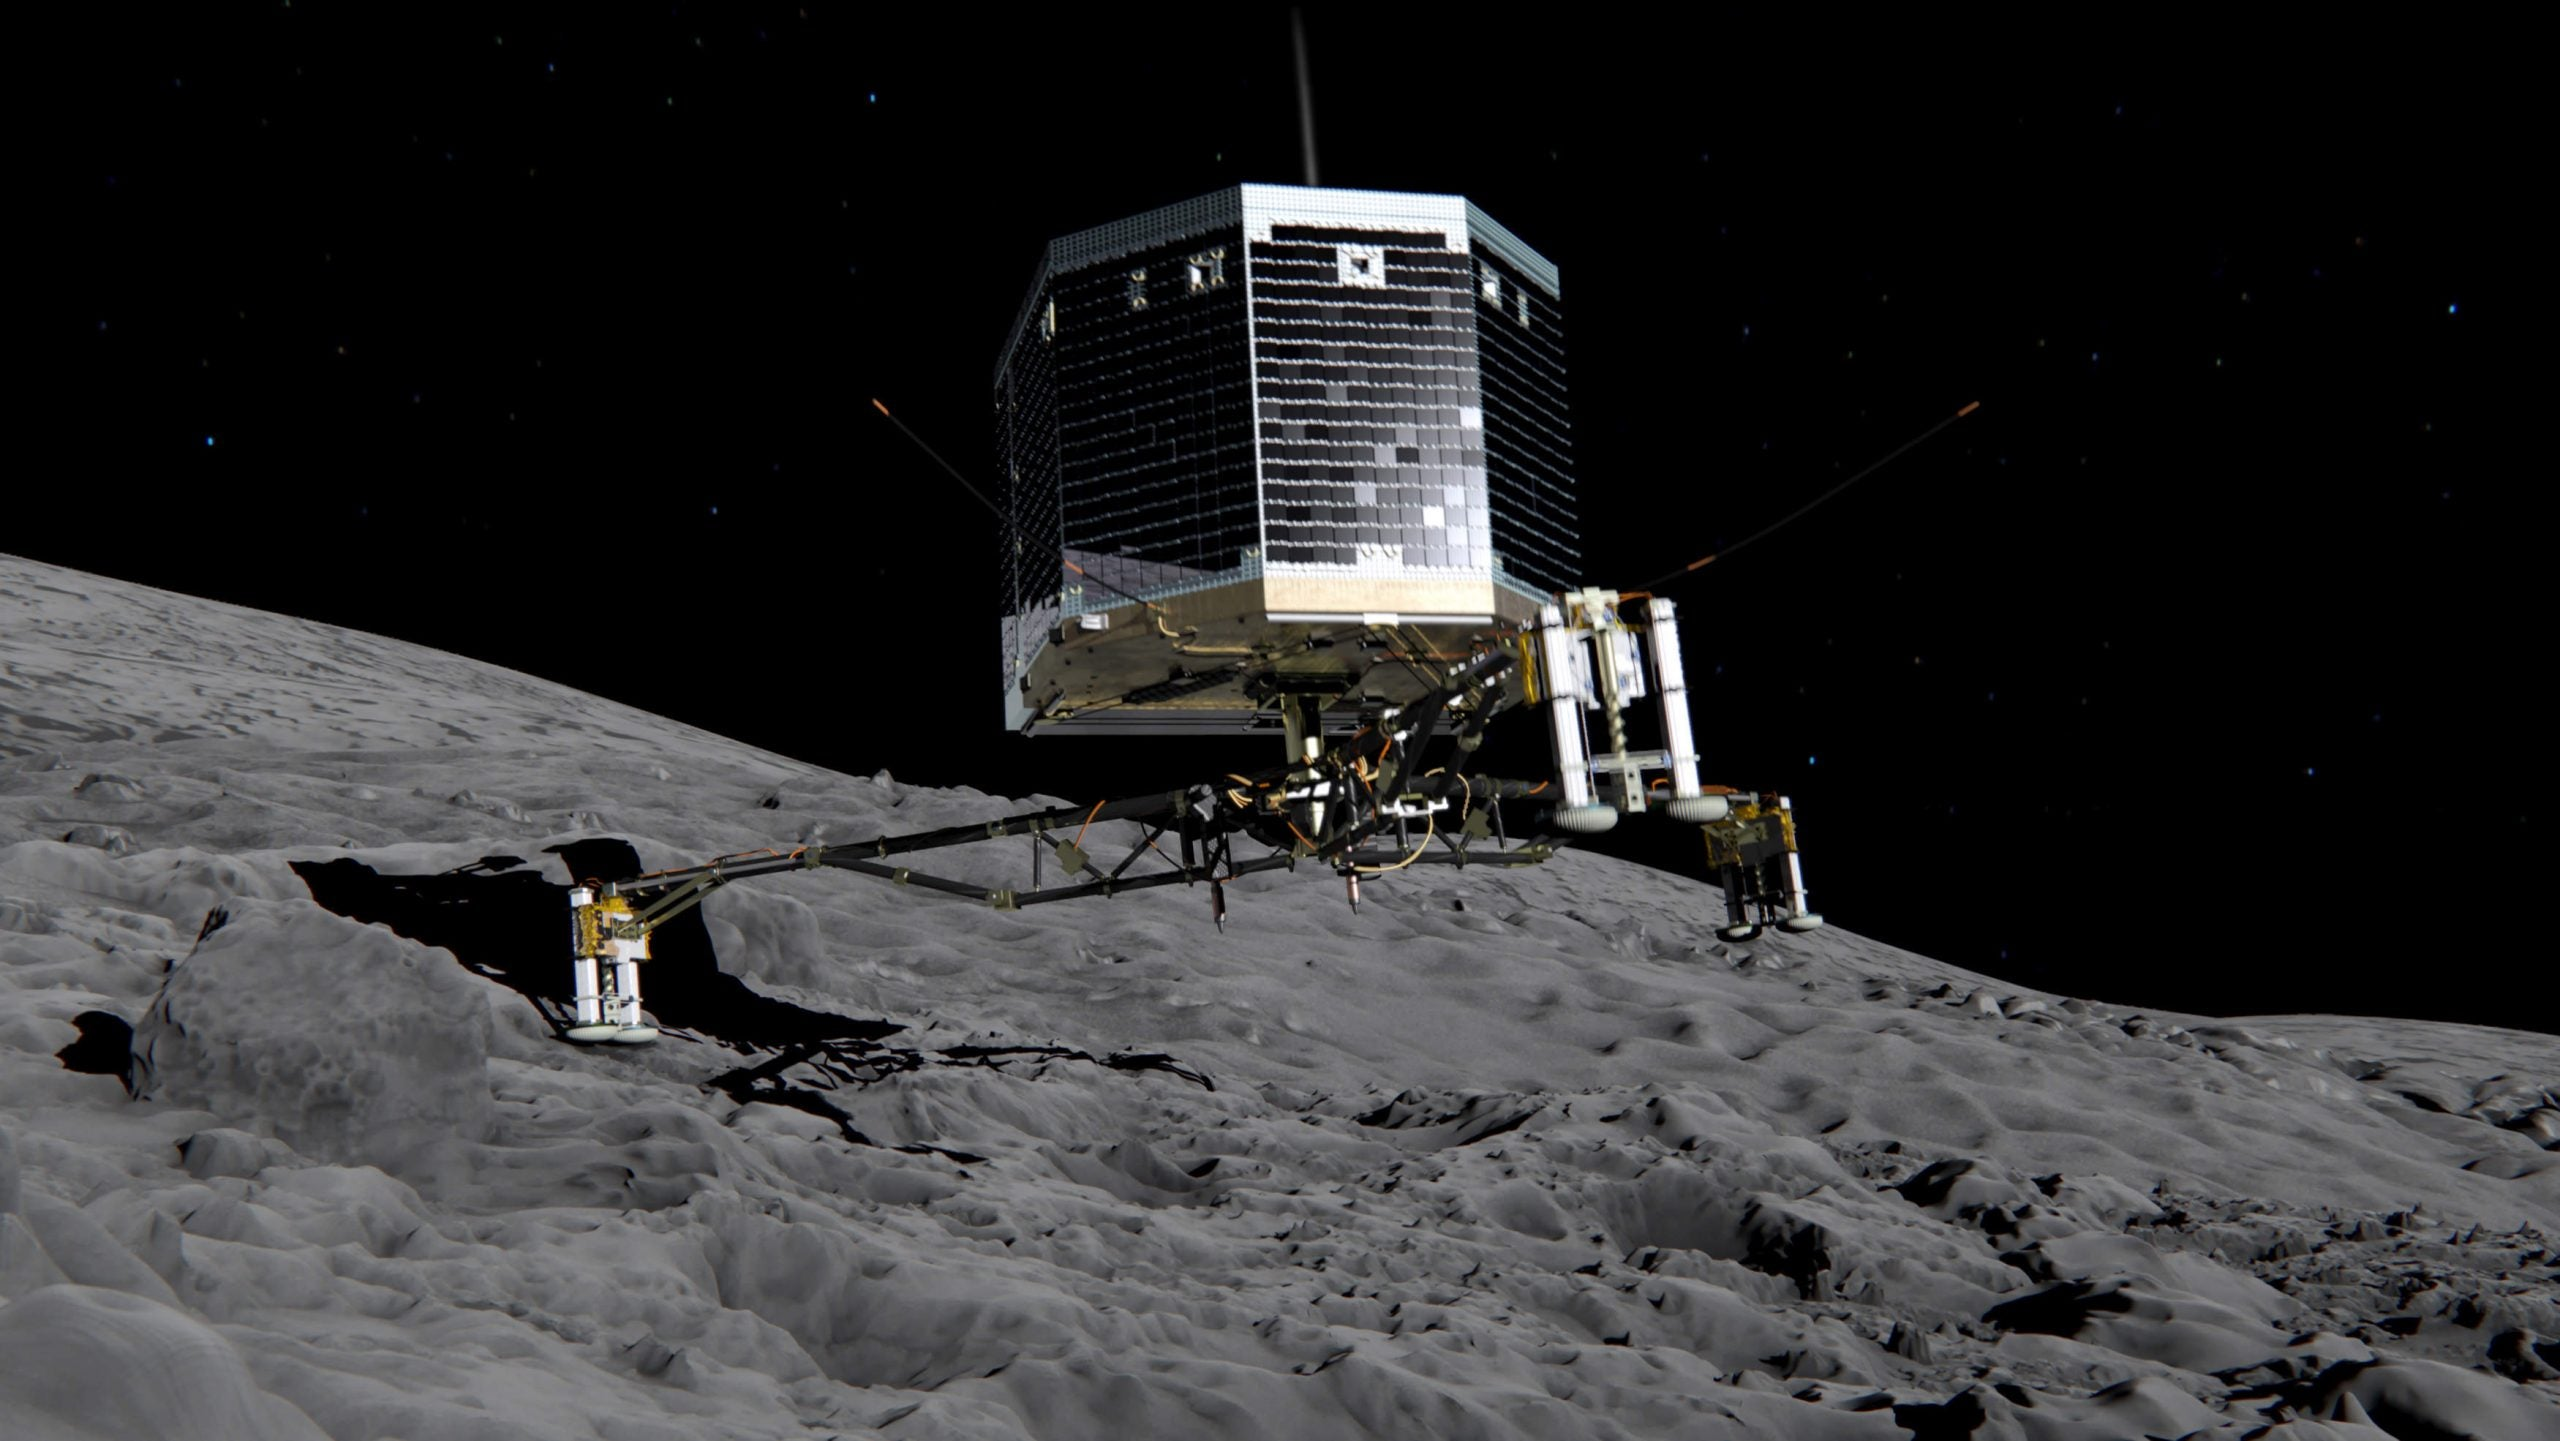 Found in space: the lost comet lander Philae has finally been discovered after a two-year search